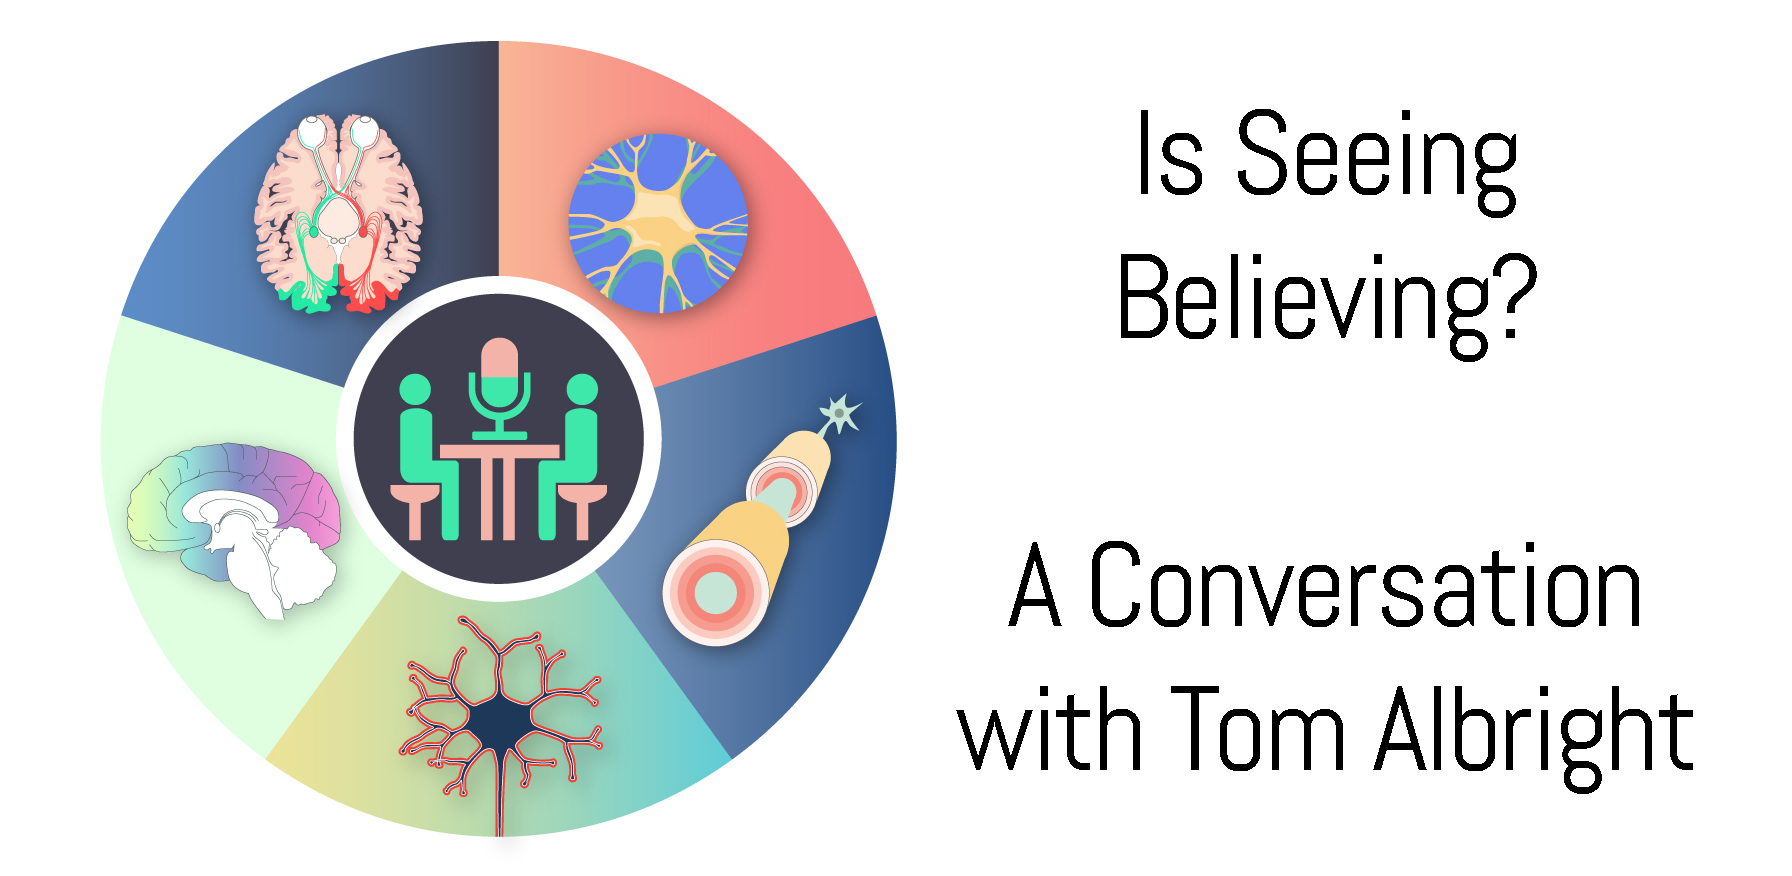 Is Seeing Believing? A Conversation with Tom Albright